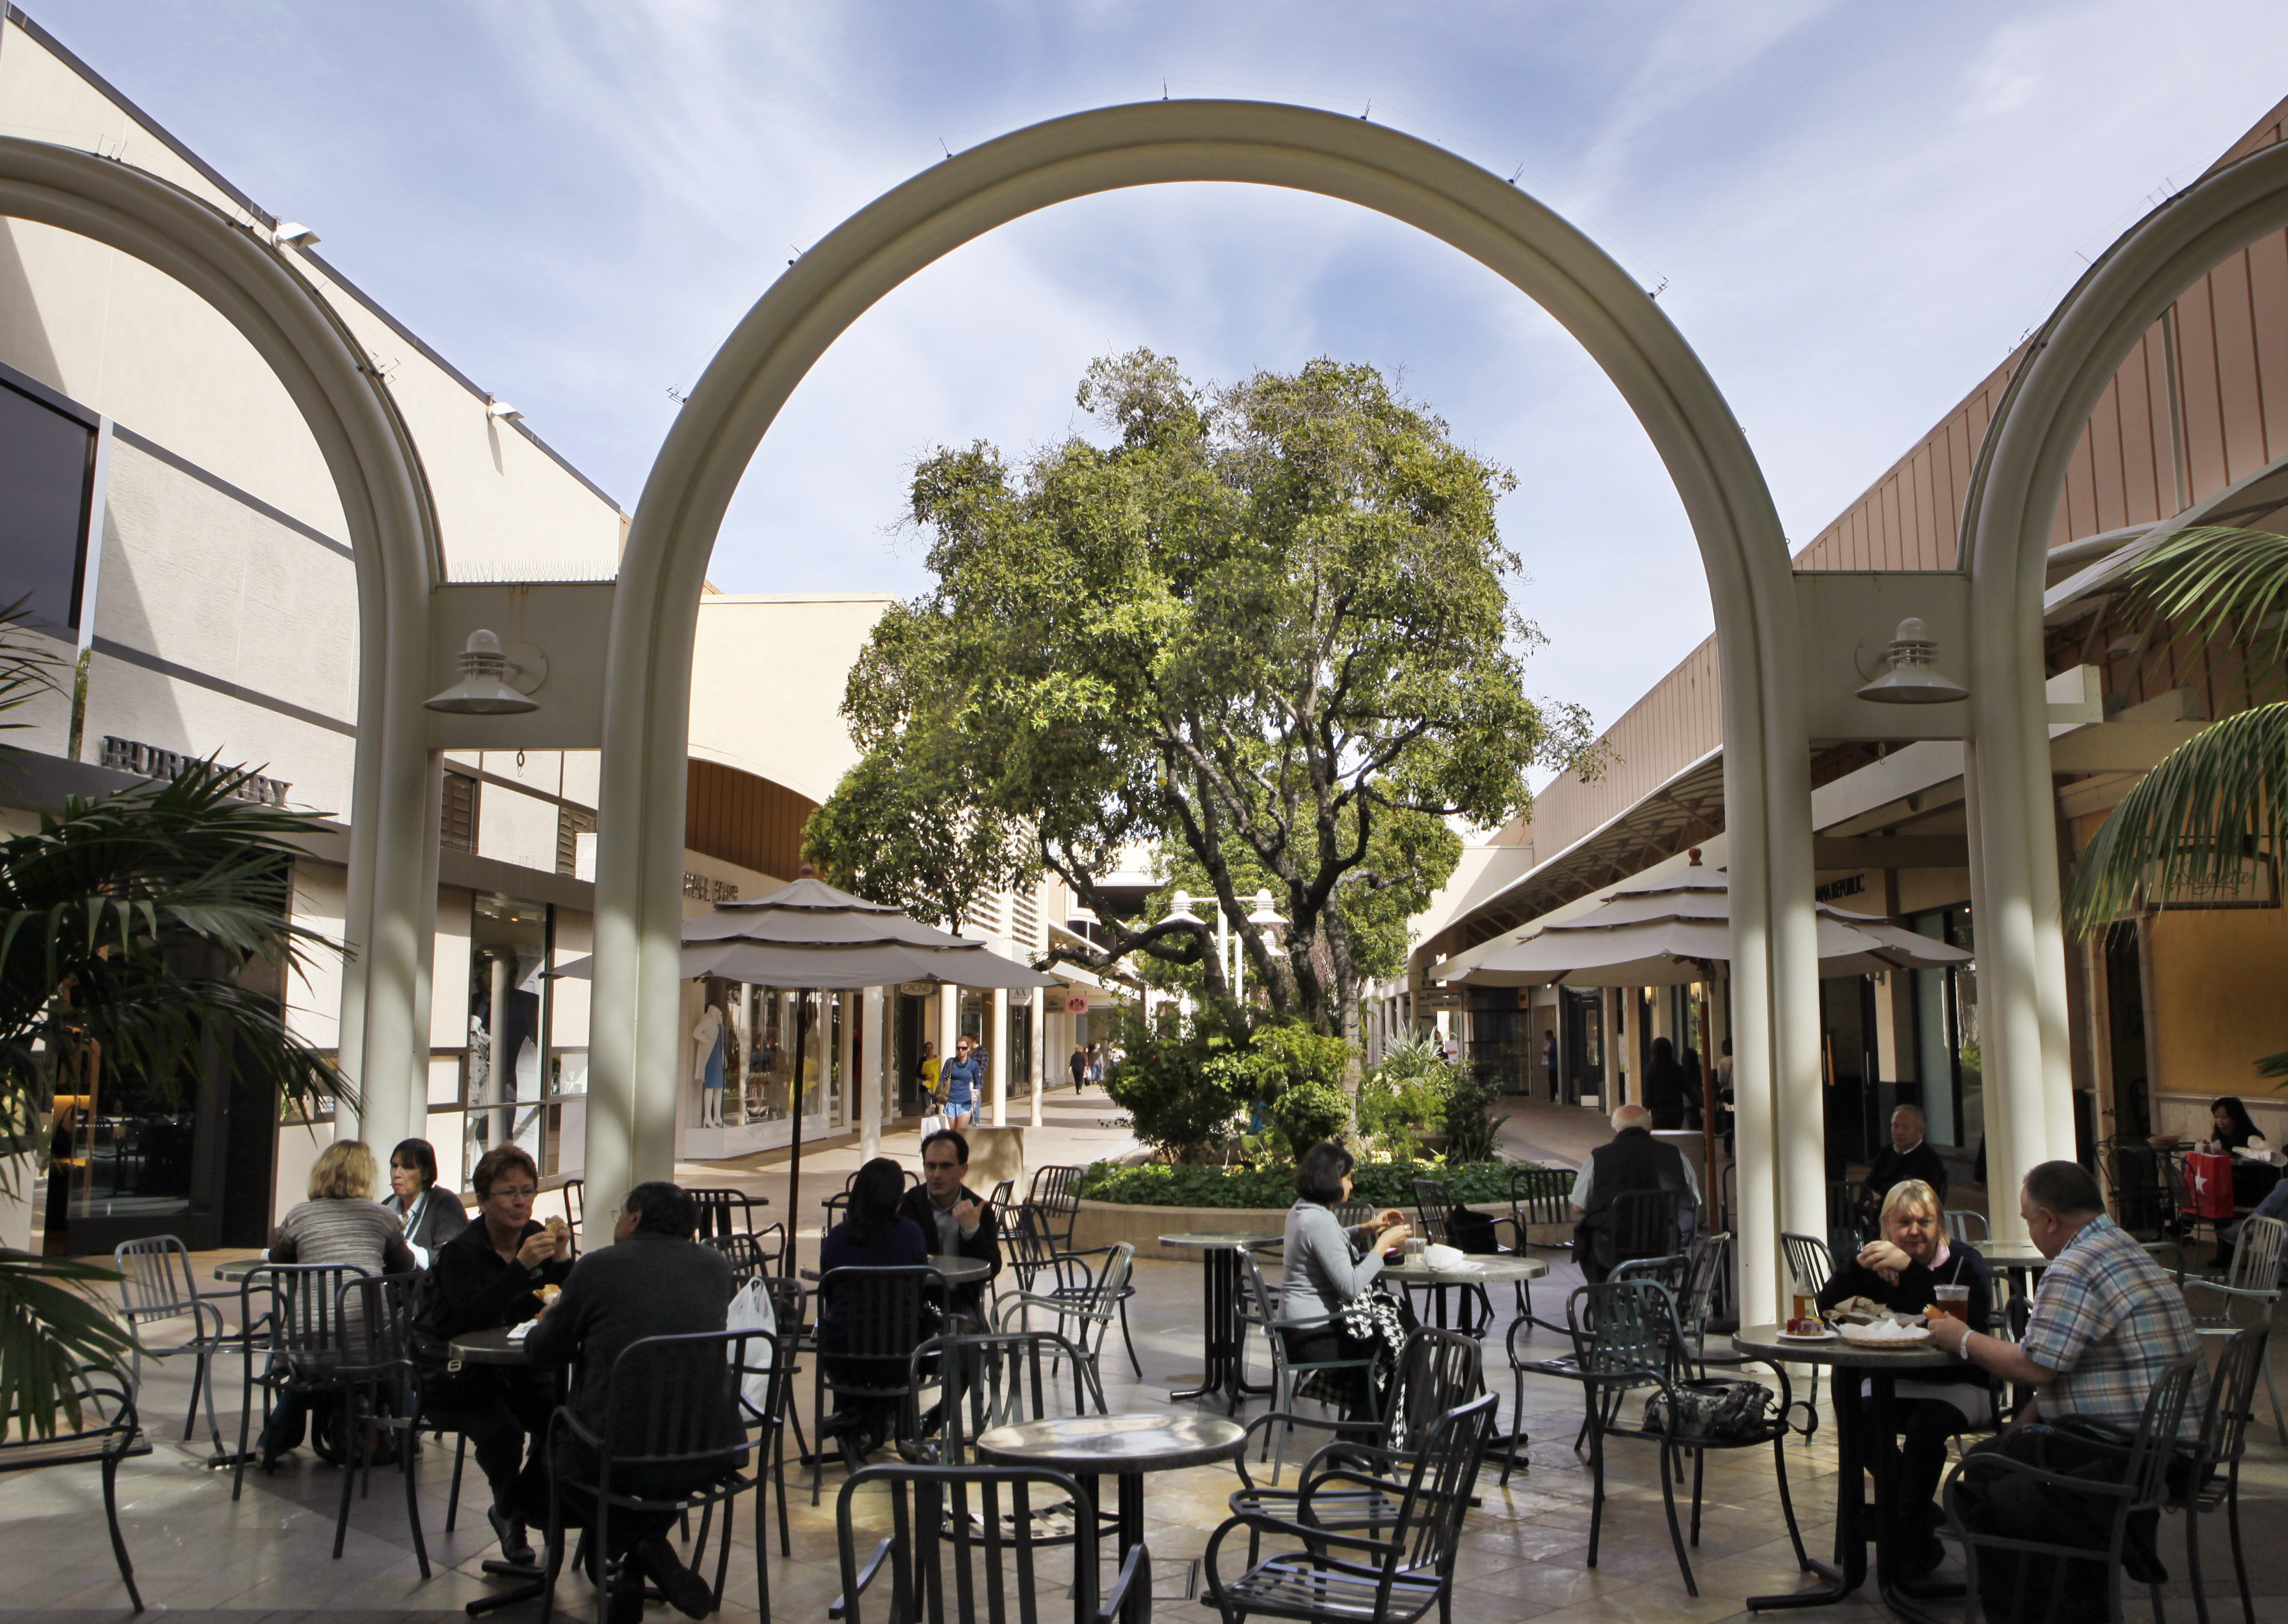 People sit at tables at the Stanford Shopping Center, a Simon Property Group property in Palo Alto, Calif., . Simon Property Group, the nation's largest shopping mall owner, made a $10 billion hostile bid Tuesday to acquire ailing rival General Growth PropertiesSimon Properties General Growth, Palo Alto, USA